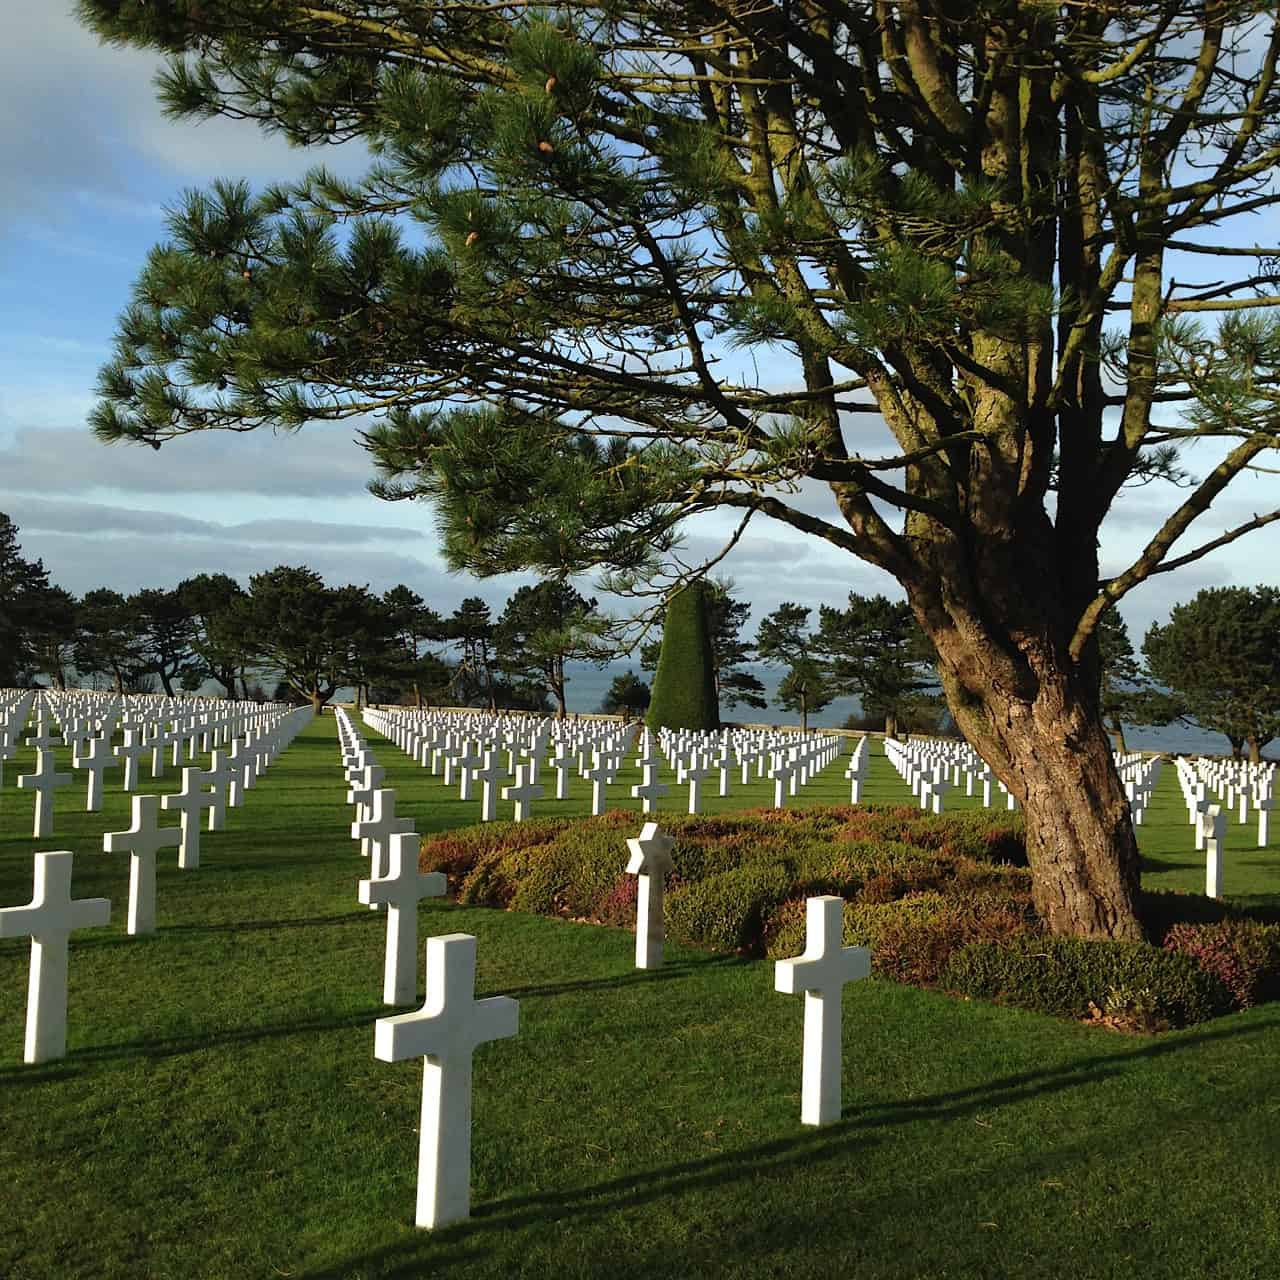 Gravesites at Normandy